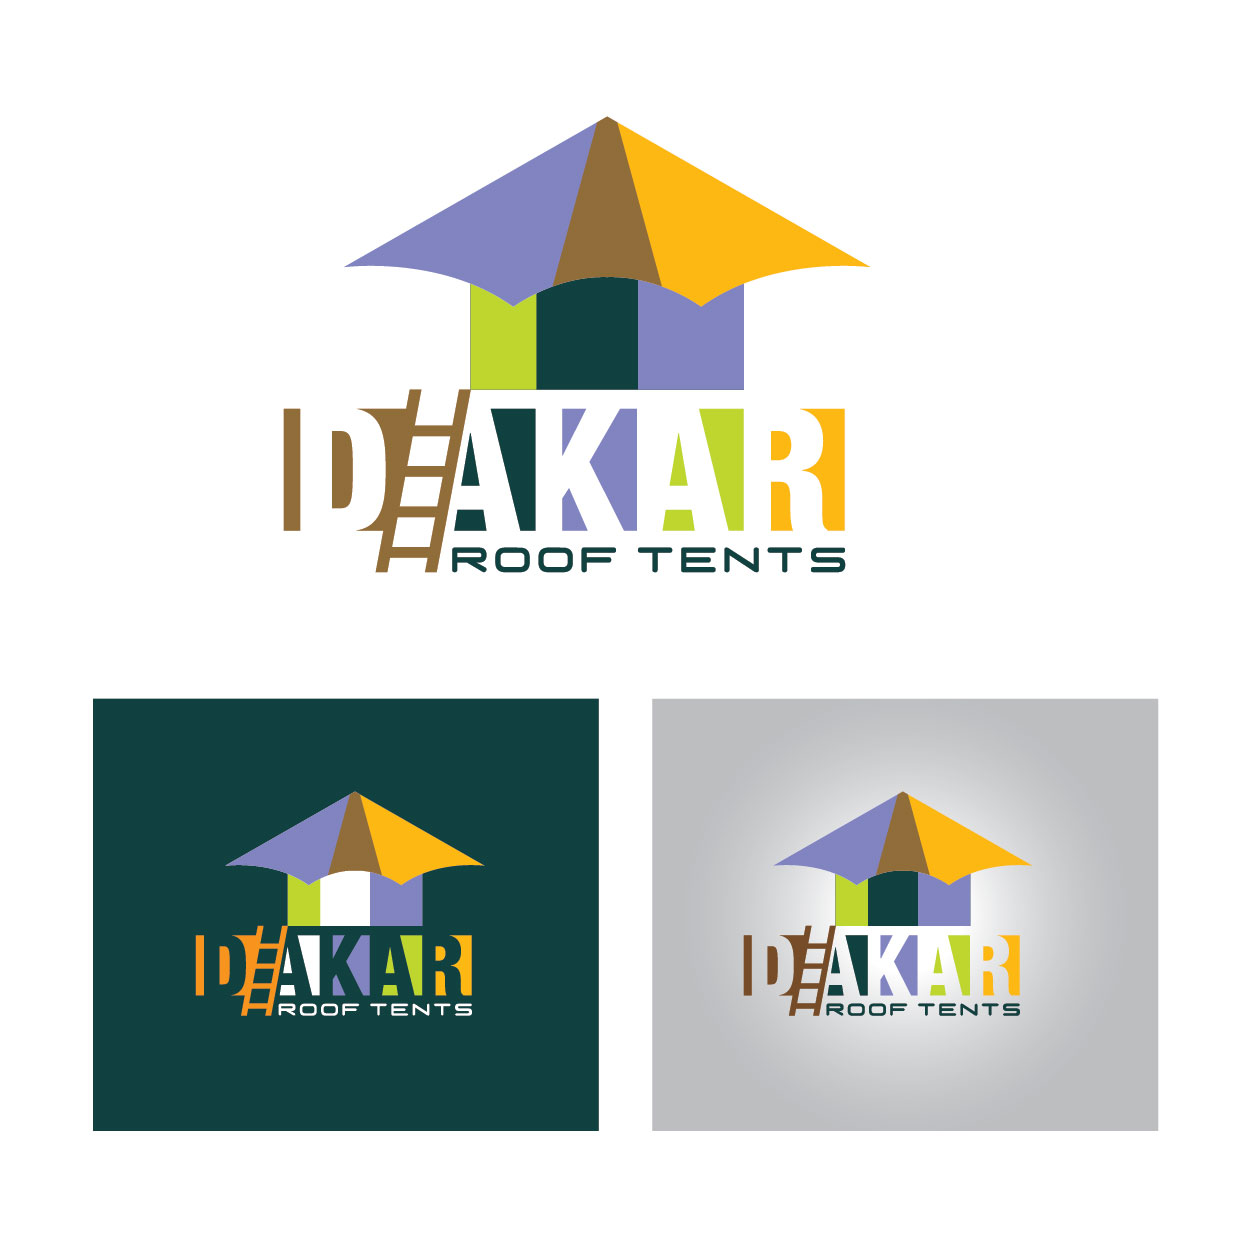 Logo Design by josephope - Entry No. 47 in the Logo Design Contest Dakar Roof Tents.